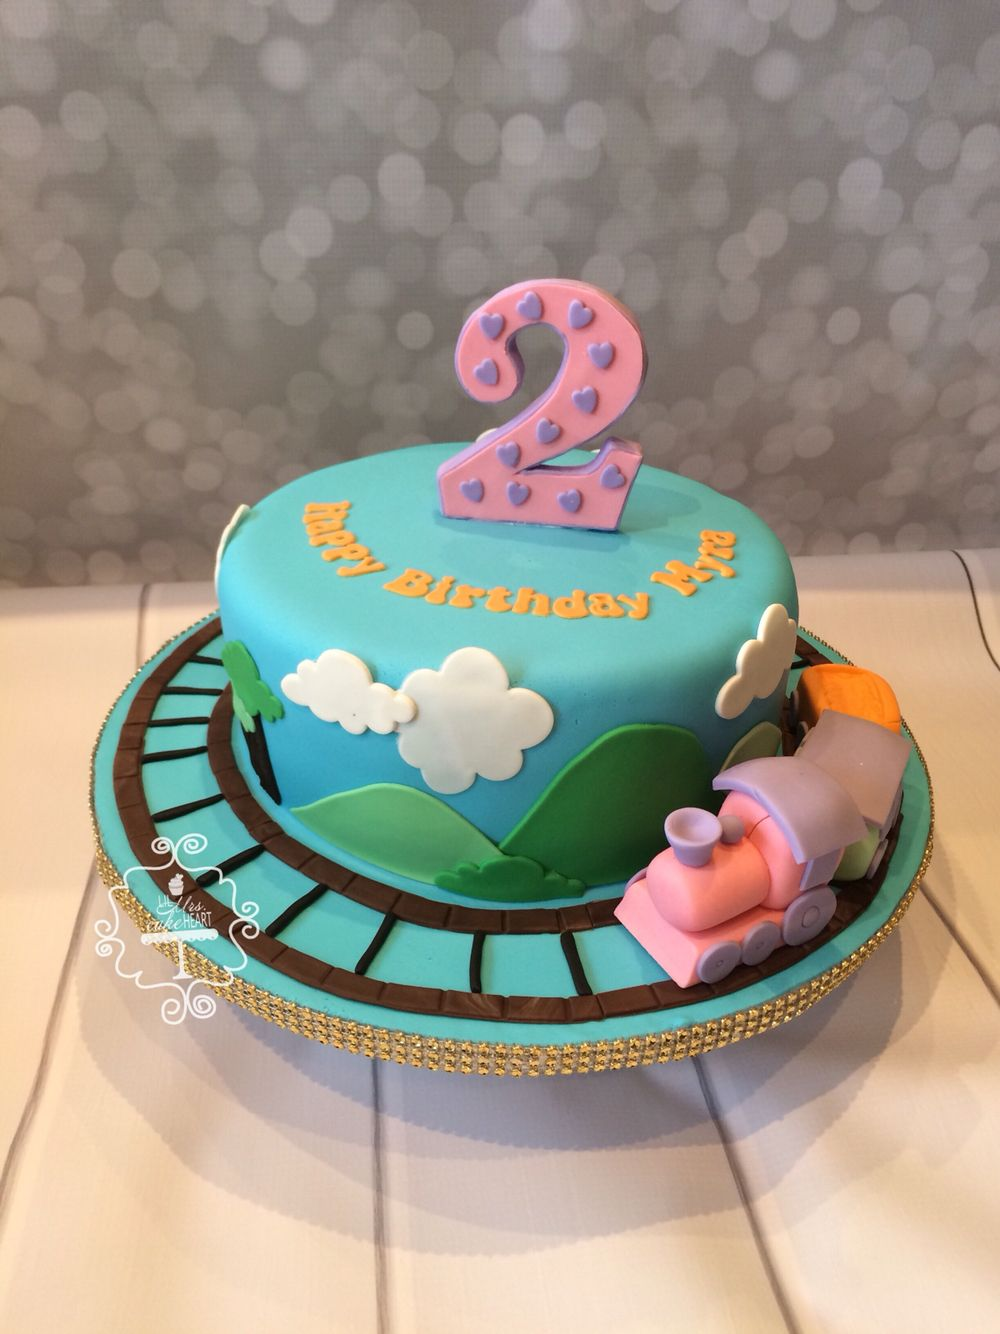 2 Year Birthday Ideas Special Lil Train Cake For A 2 Year Old Baby Girl Birthday By Lil